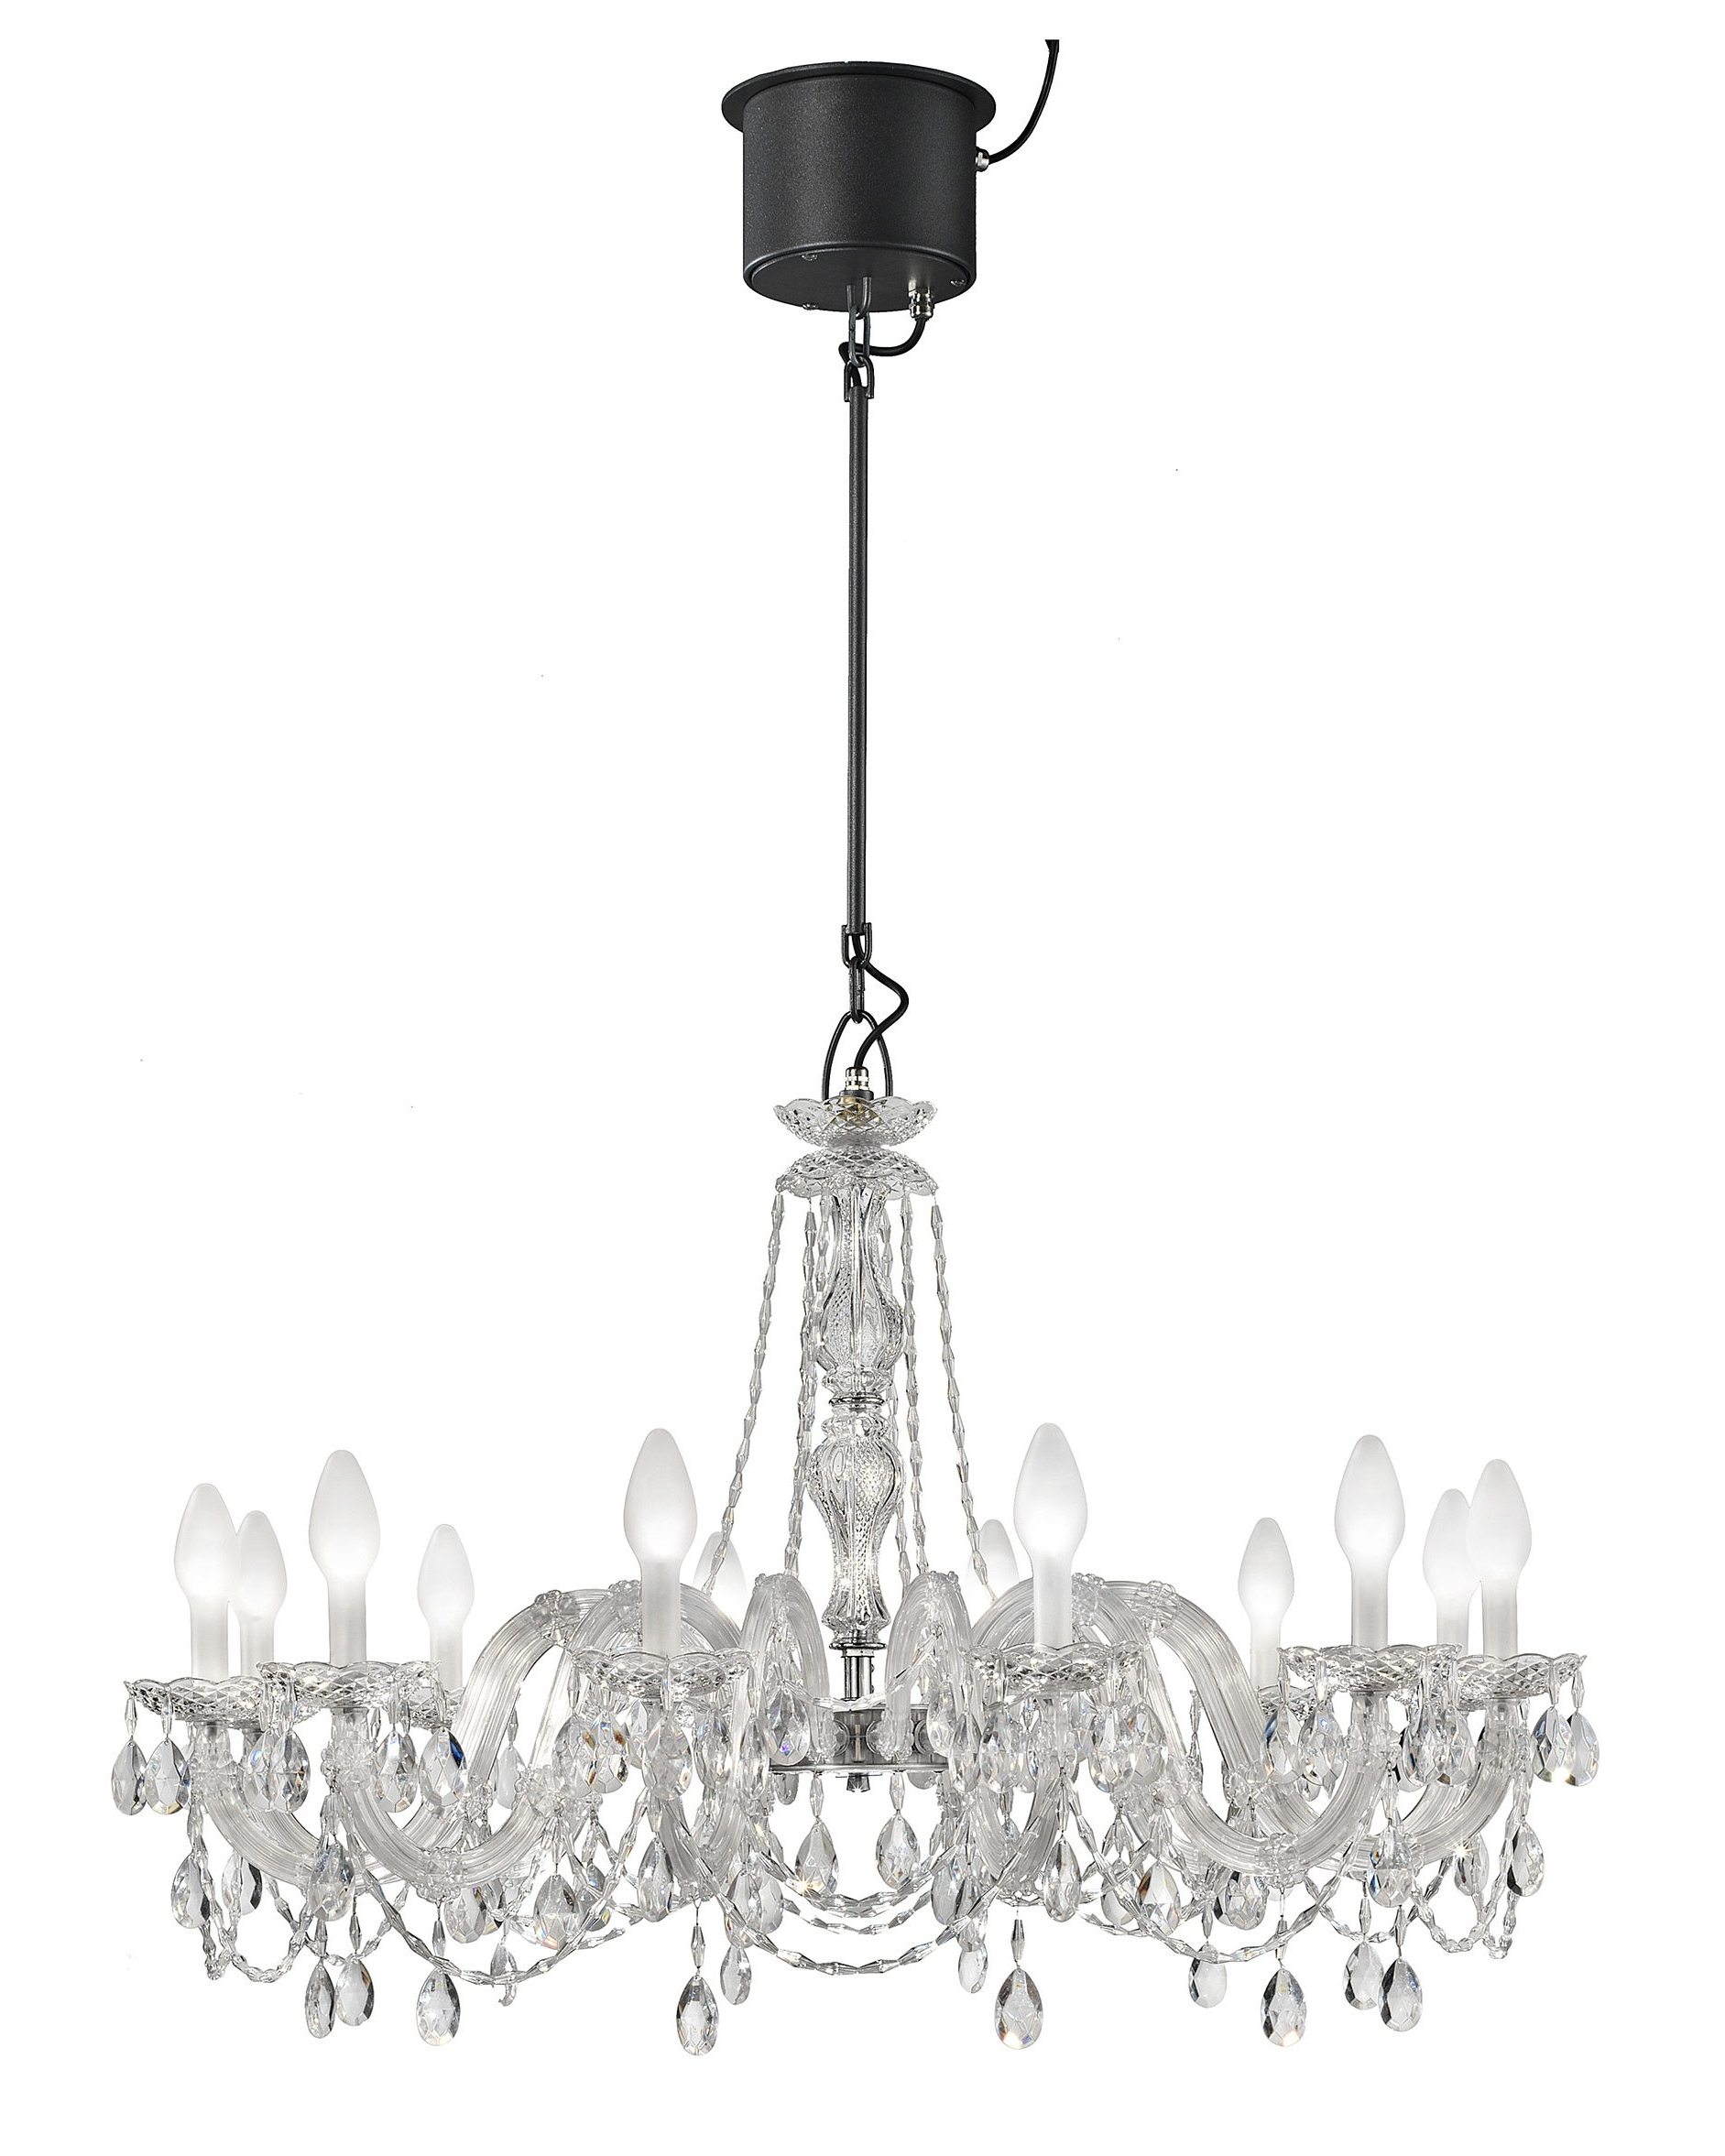 Best And Newest Light Fitting Chandeliers Pertaining To Modern Light Fixtures & Luxury Lighting (View 3 of 15)